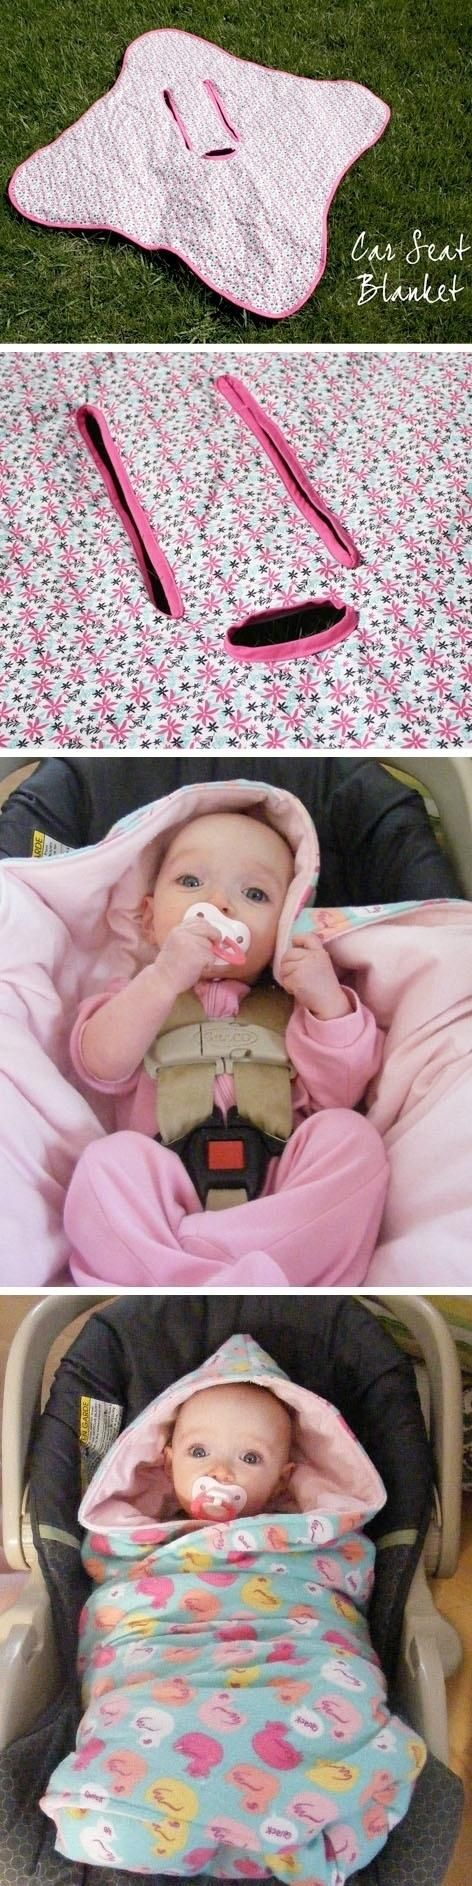 Tutorial for hooded carseat blanket. Made it for my little girl who has motion sickness, cuts down on having to undo the whole carseat to clean.